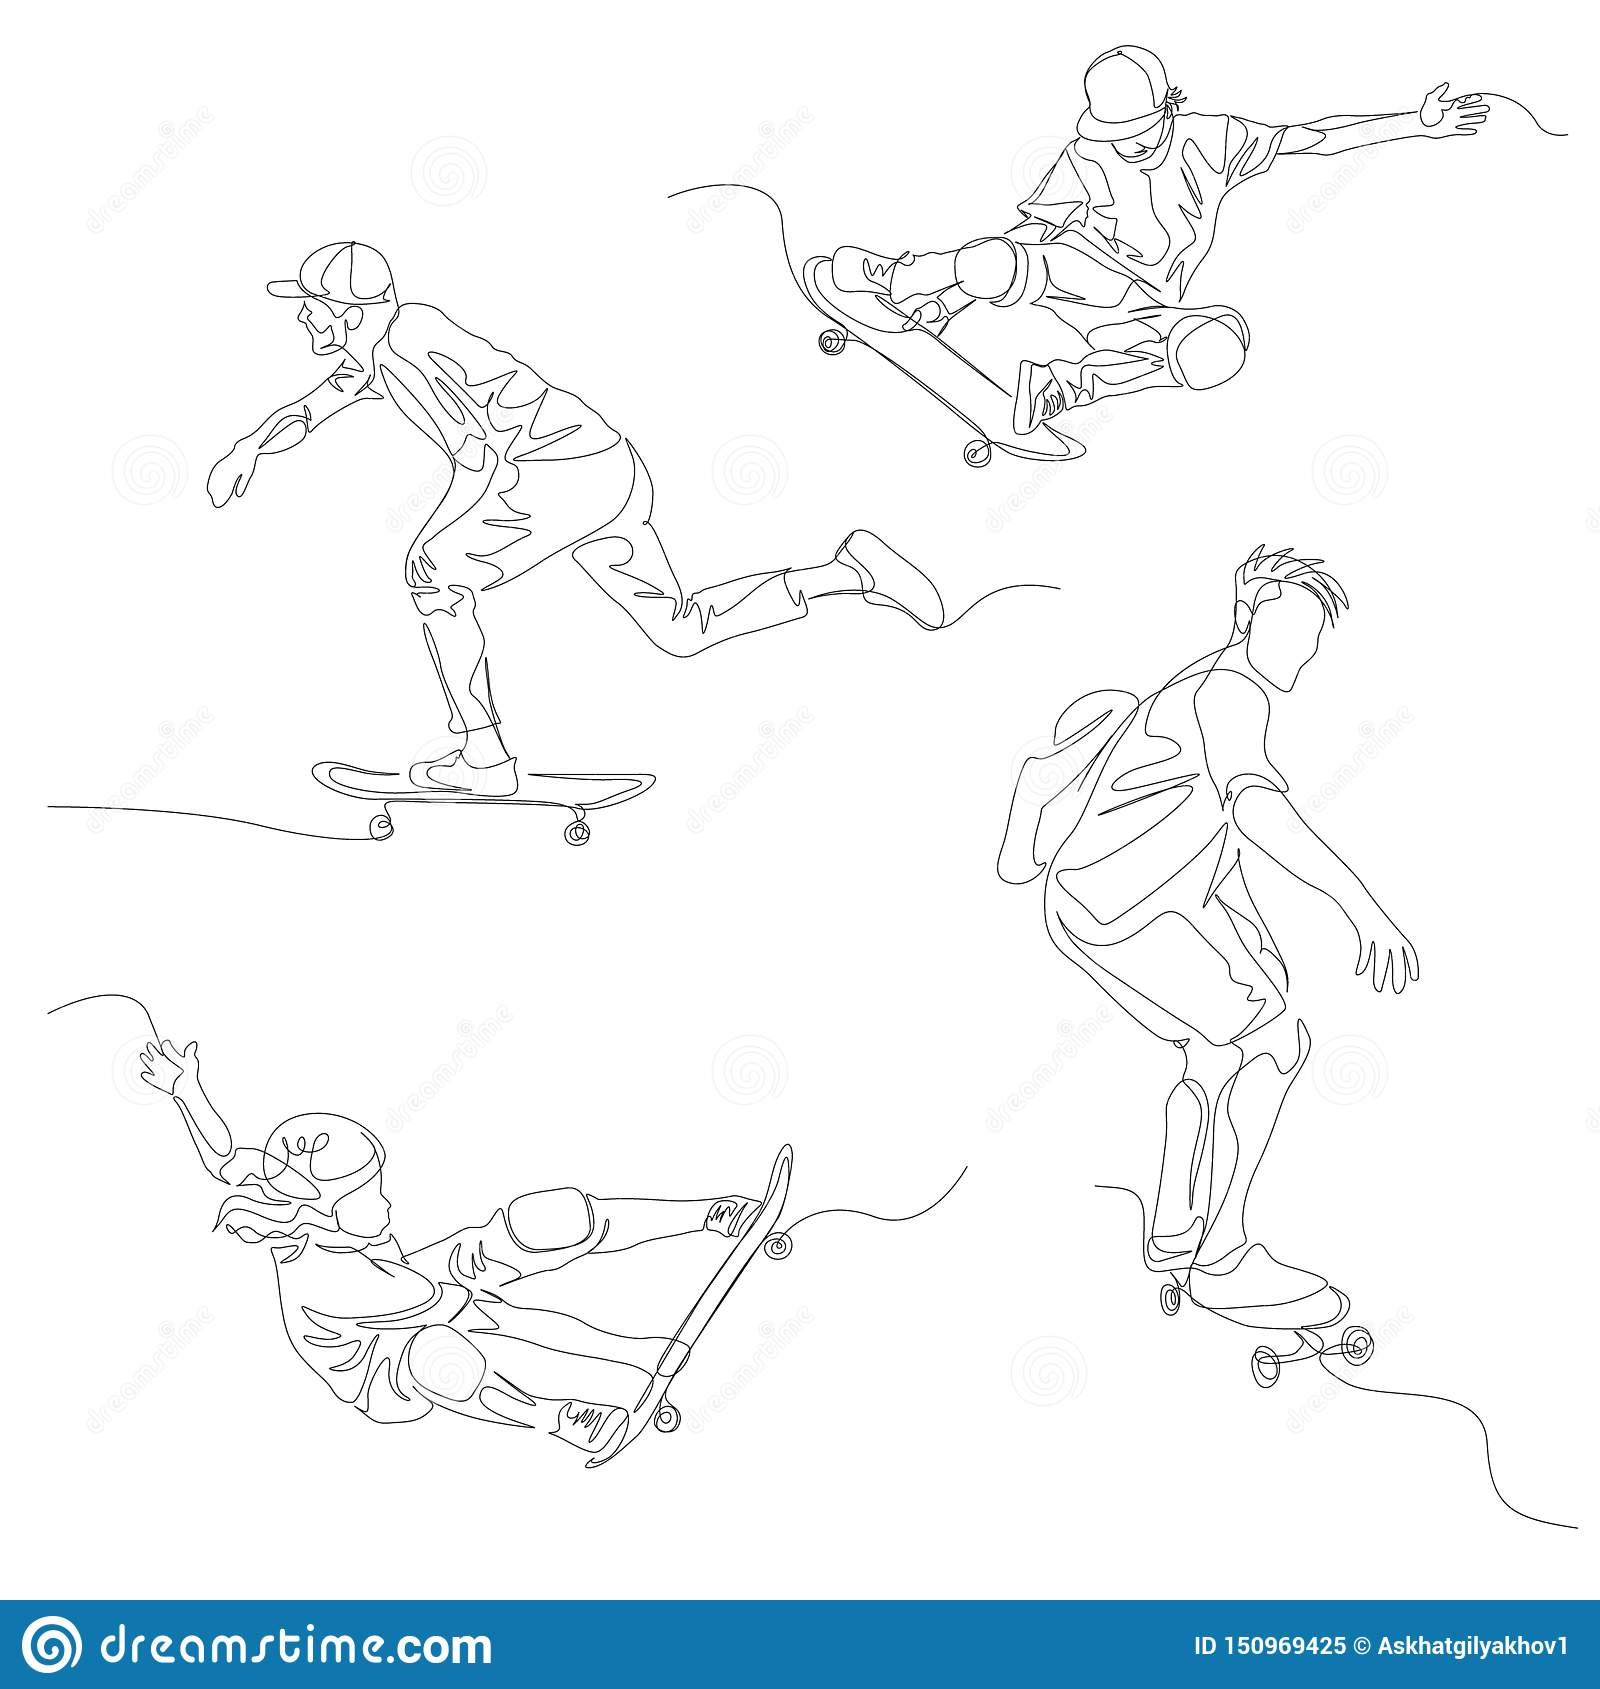 Continuous one line skater set. Skateboarding, Summer Olympic Games. Vector